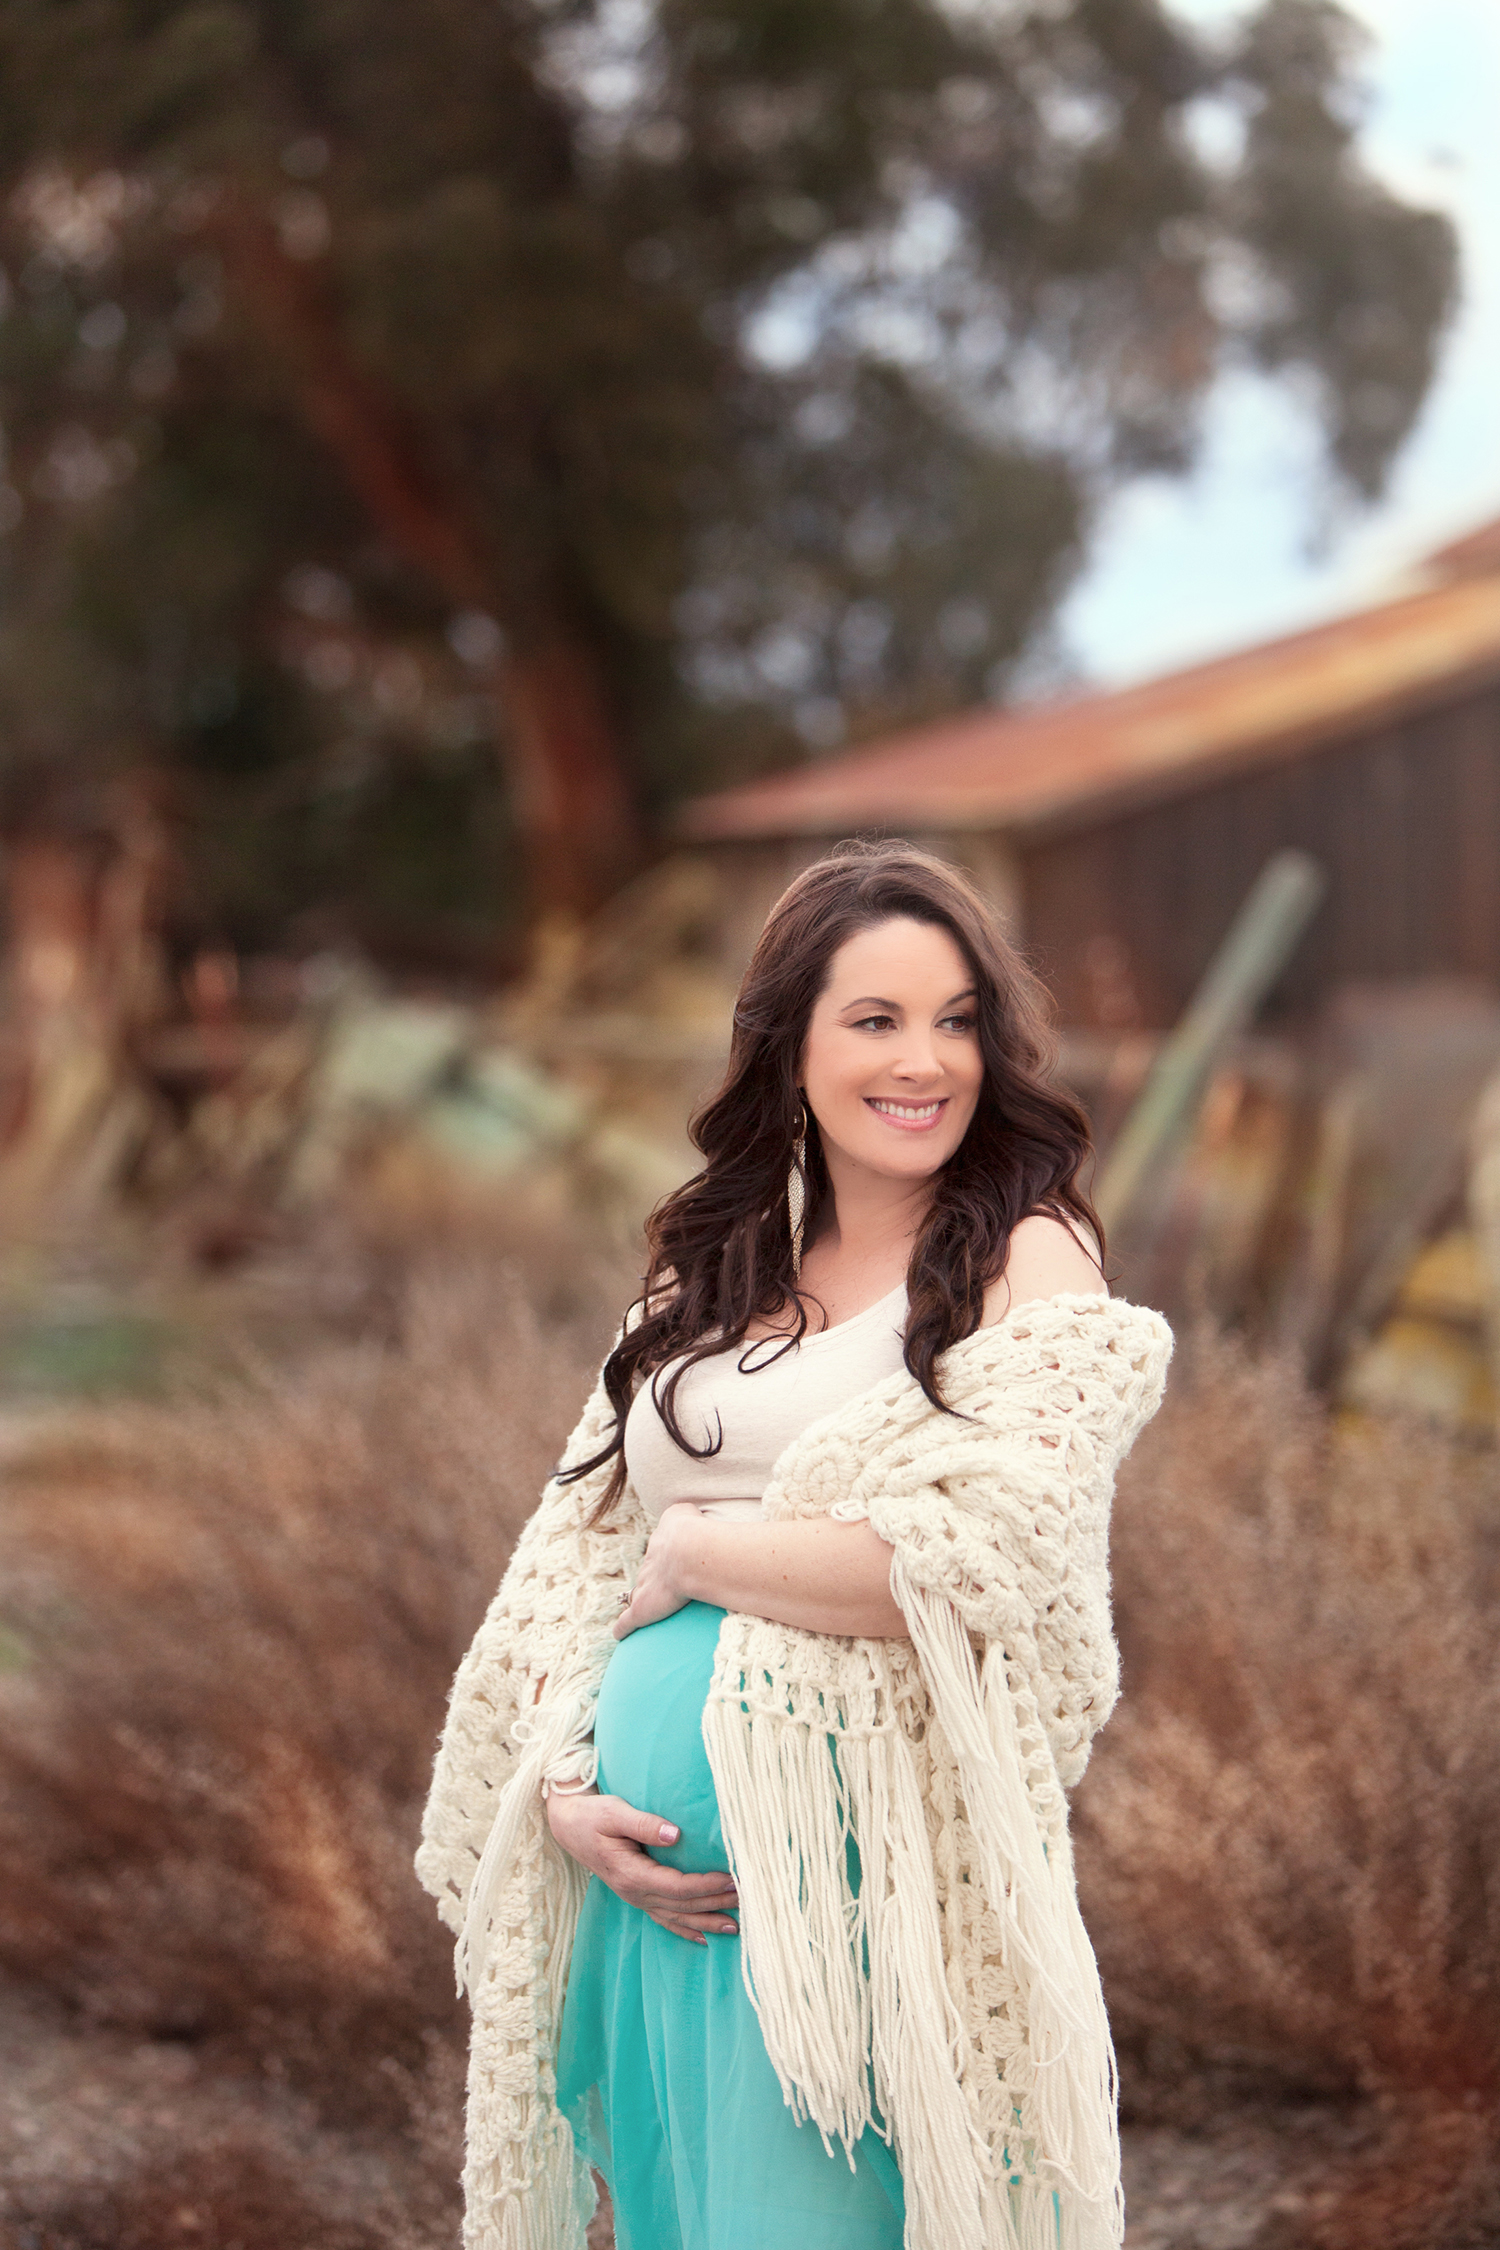 Dena_Rooney_Maternity_Portraits_066.jpg